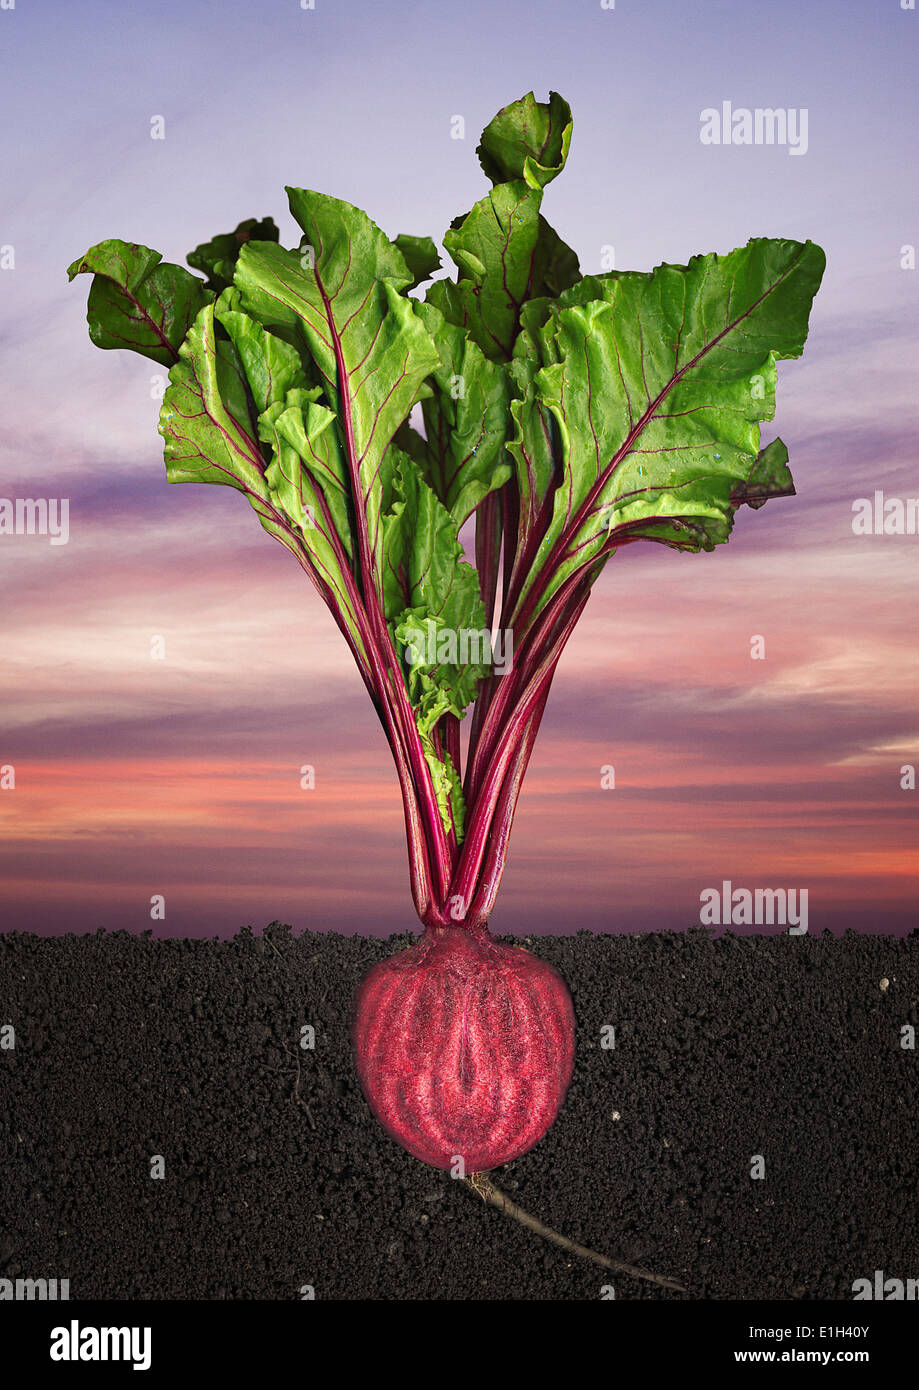 Halved beetroot growing in soil - Stock Image